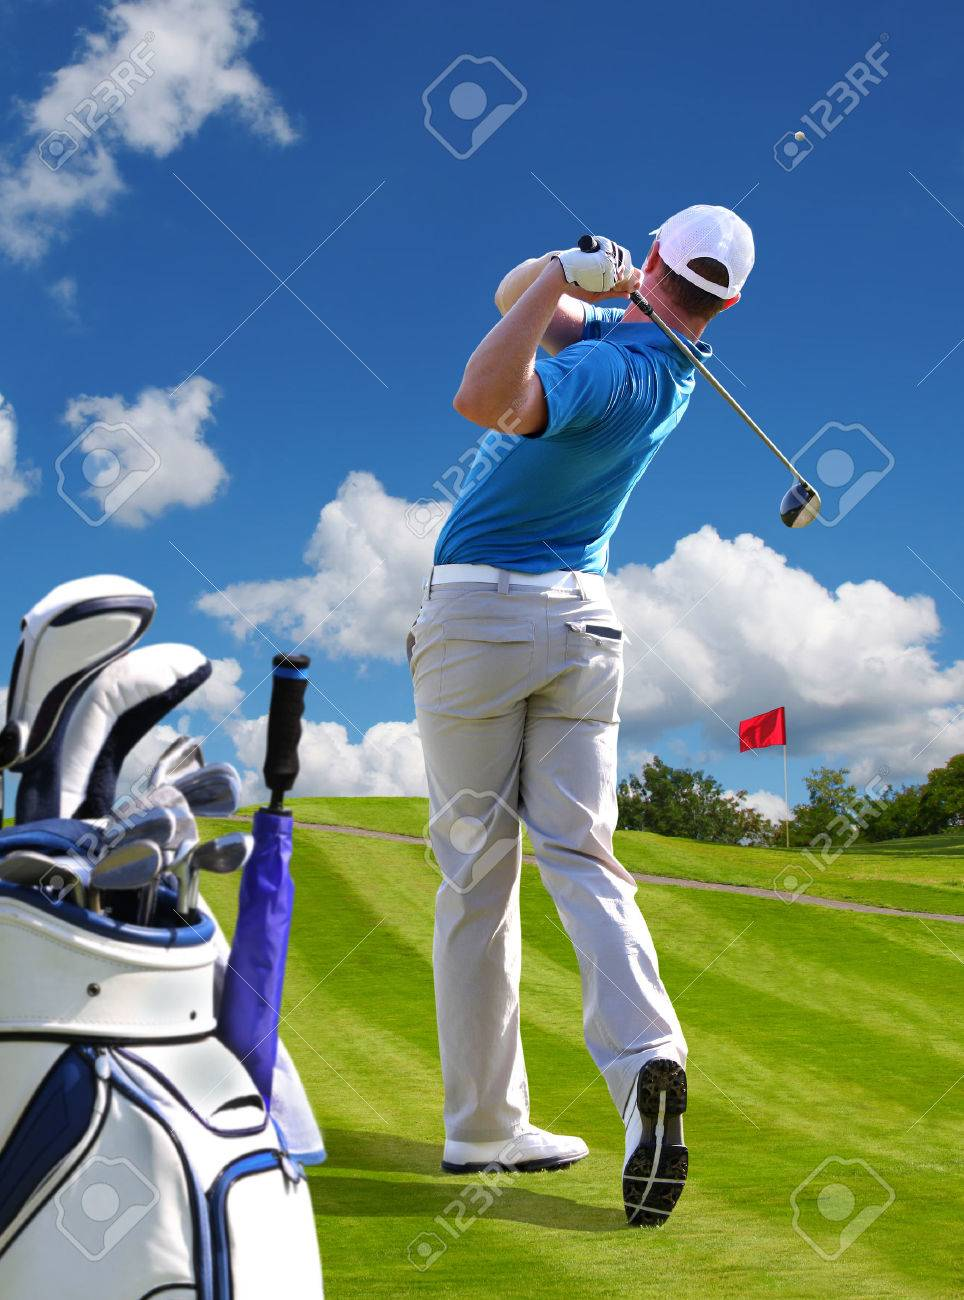 Man playing golf against blue sky with golf bag Stock Photo - 26016252